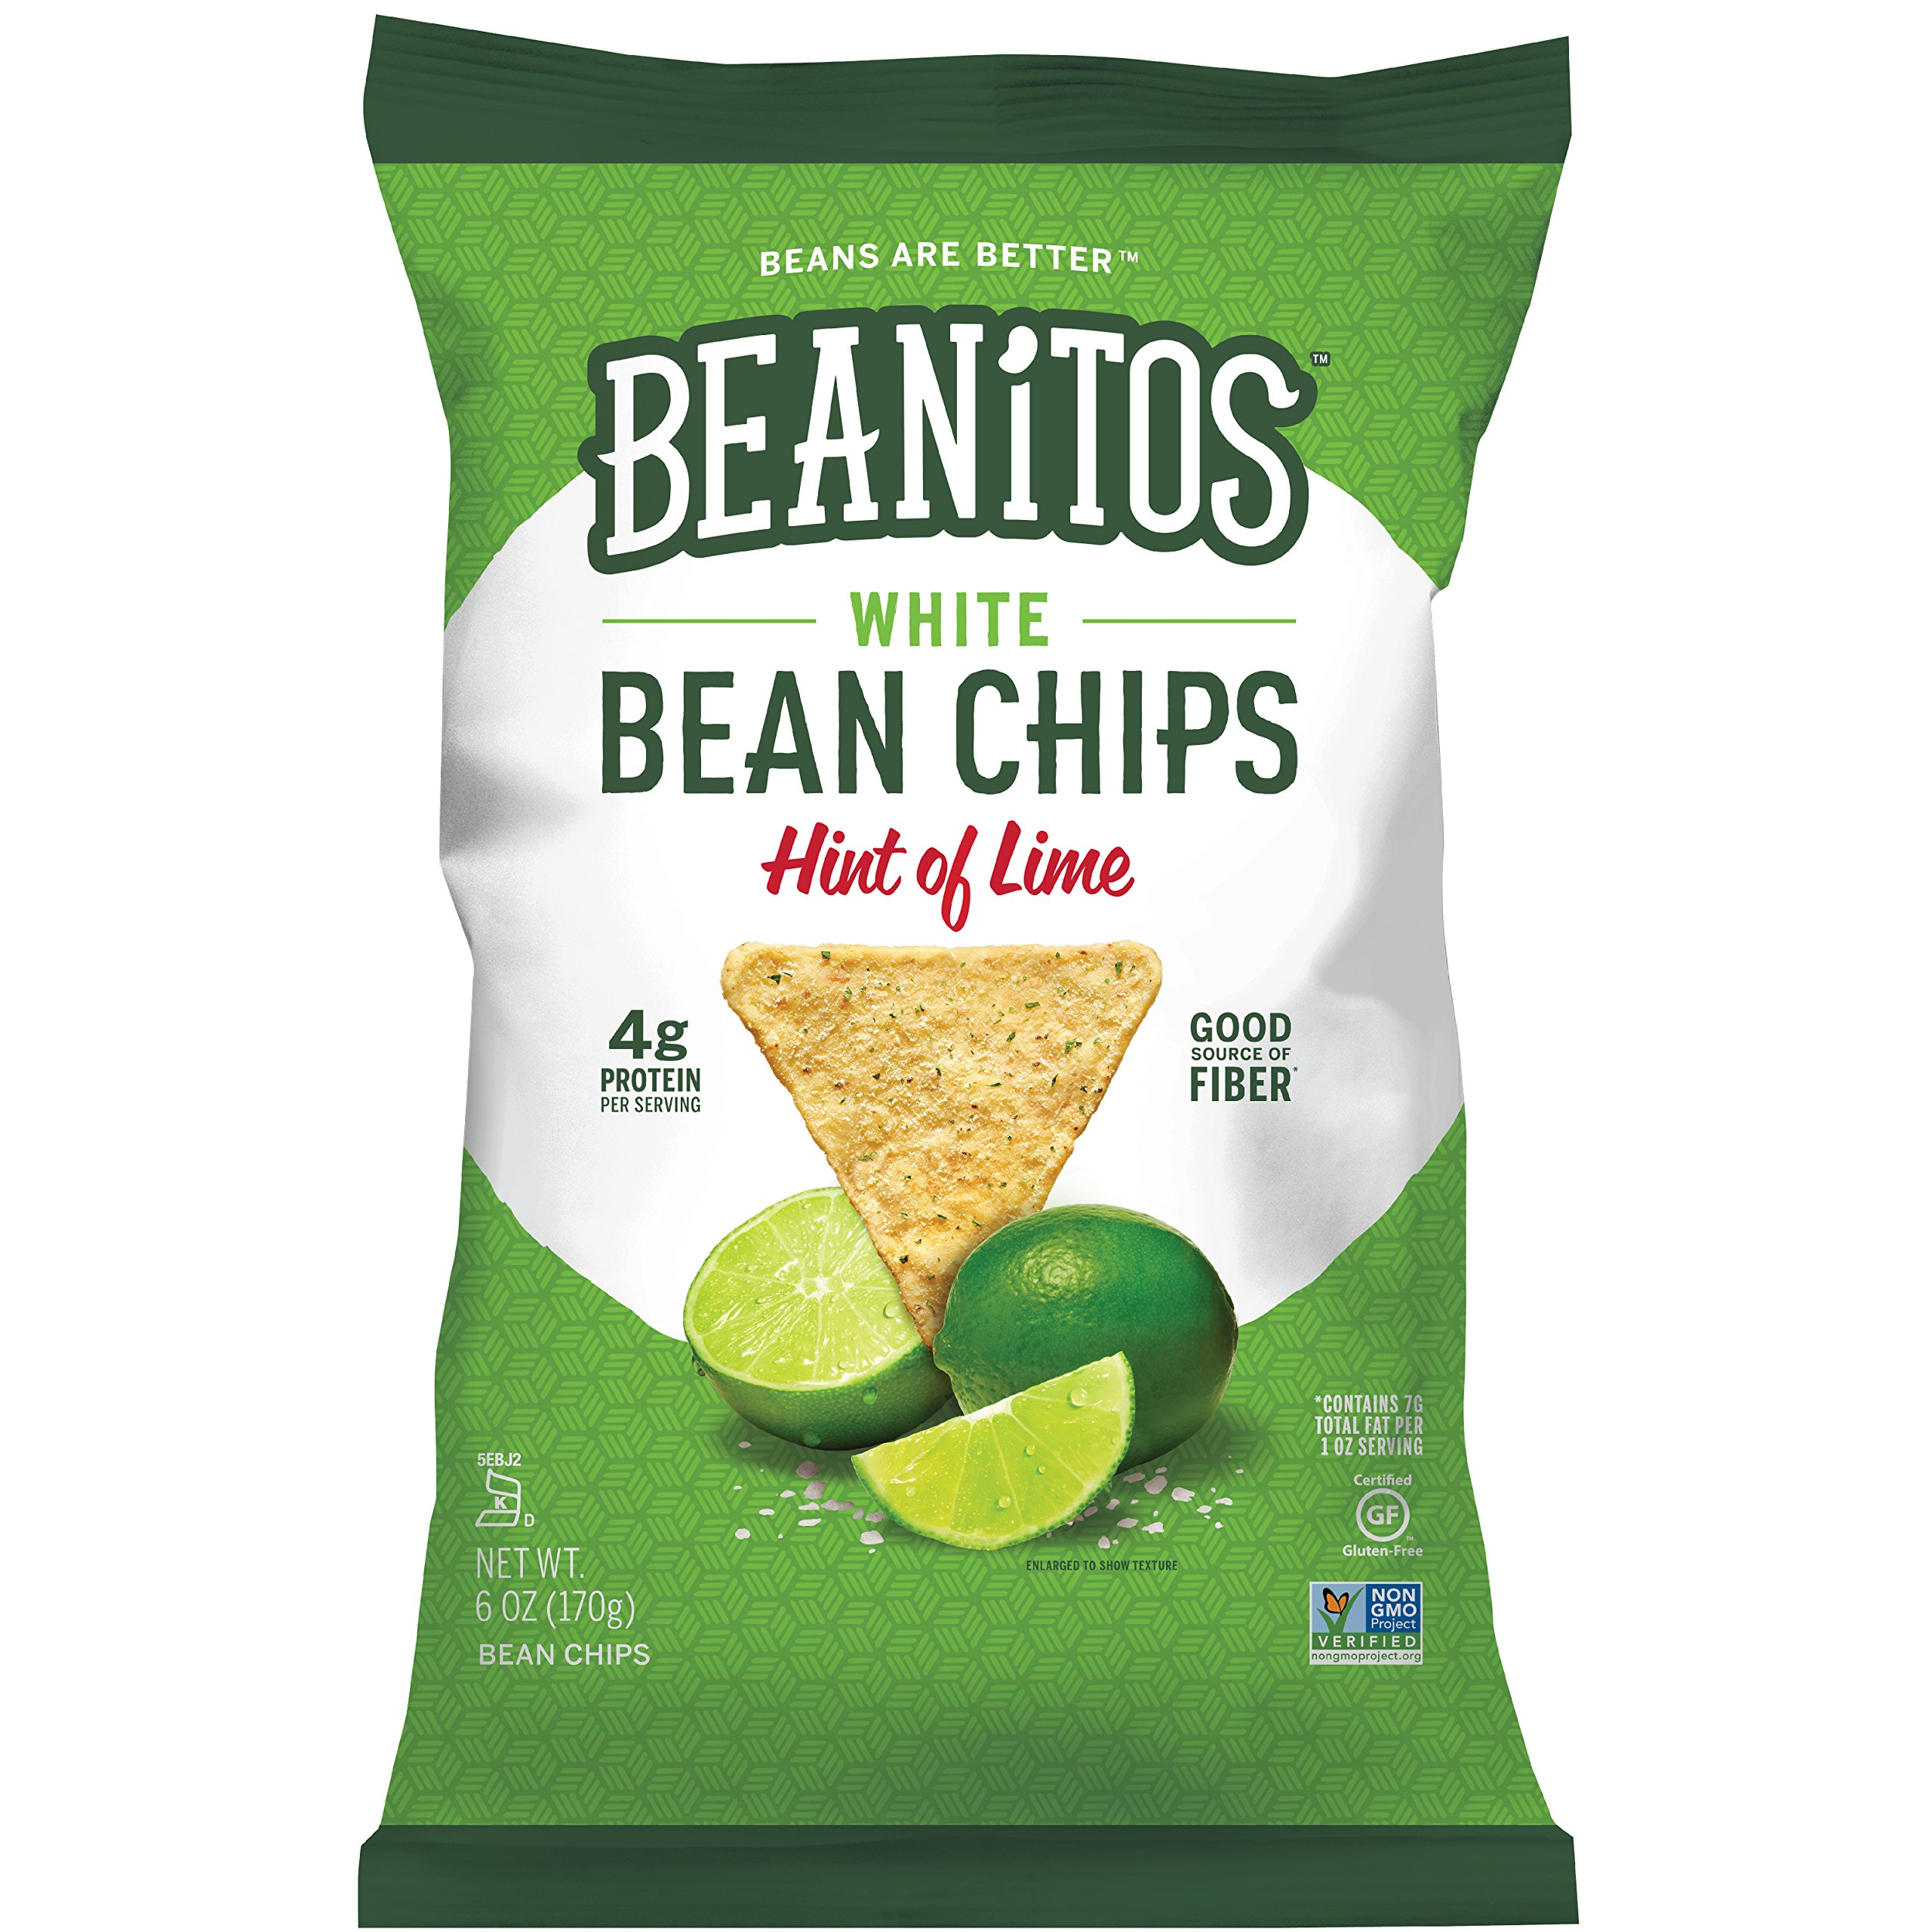 Beanitos Hint of Lime Bean Chips with Sea Salt Plant Based Protein Good Source Fiber Gluten Free Non-GMO Vegan Corn Free Tortilla Chip Snack 6 Ounce (Pack of 6)